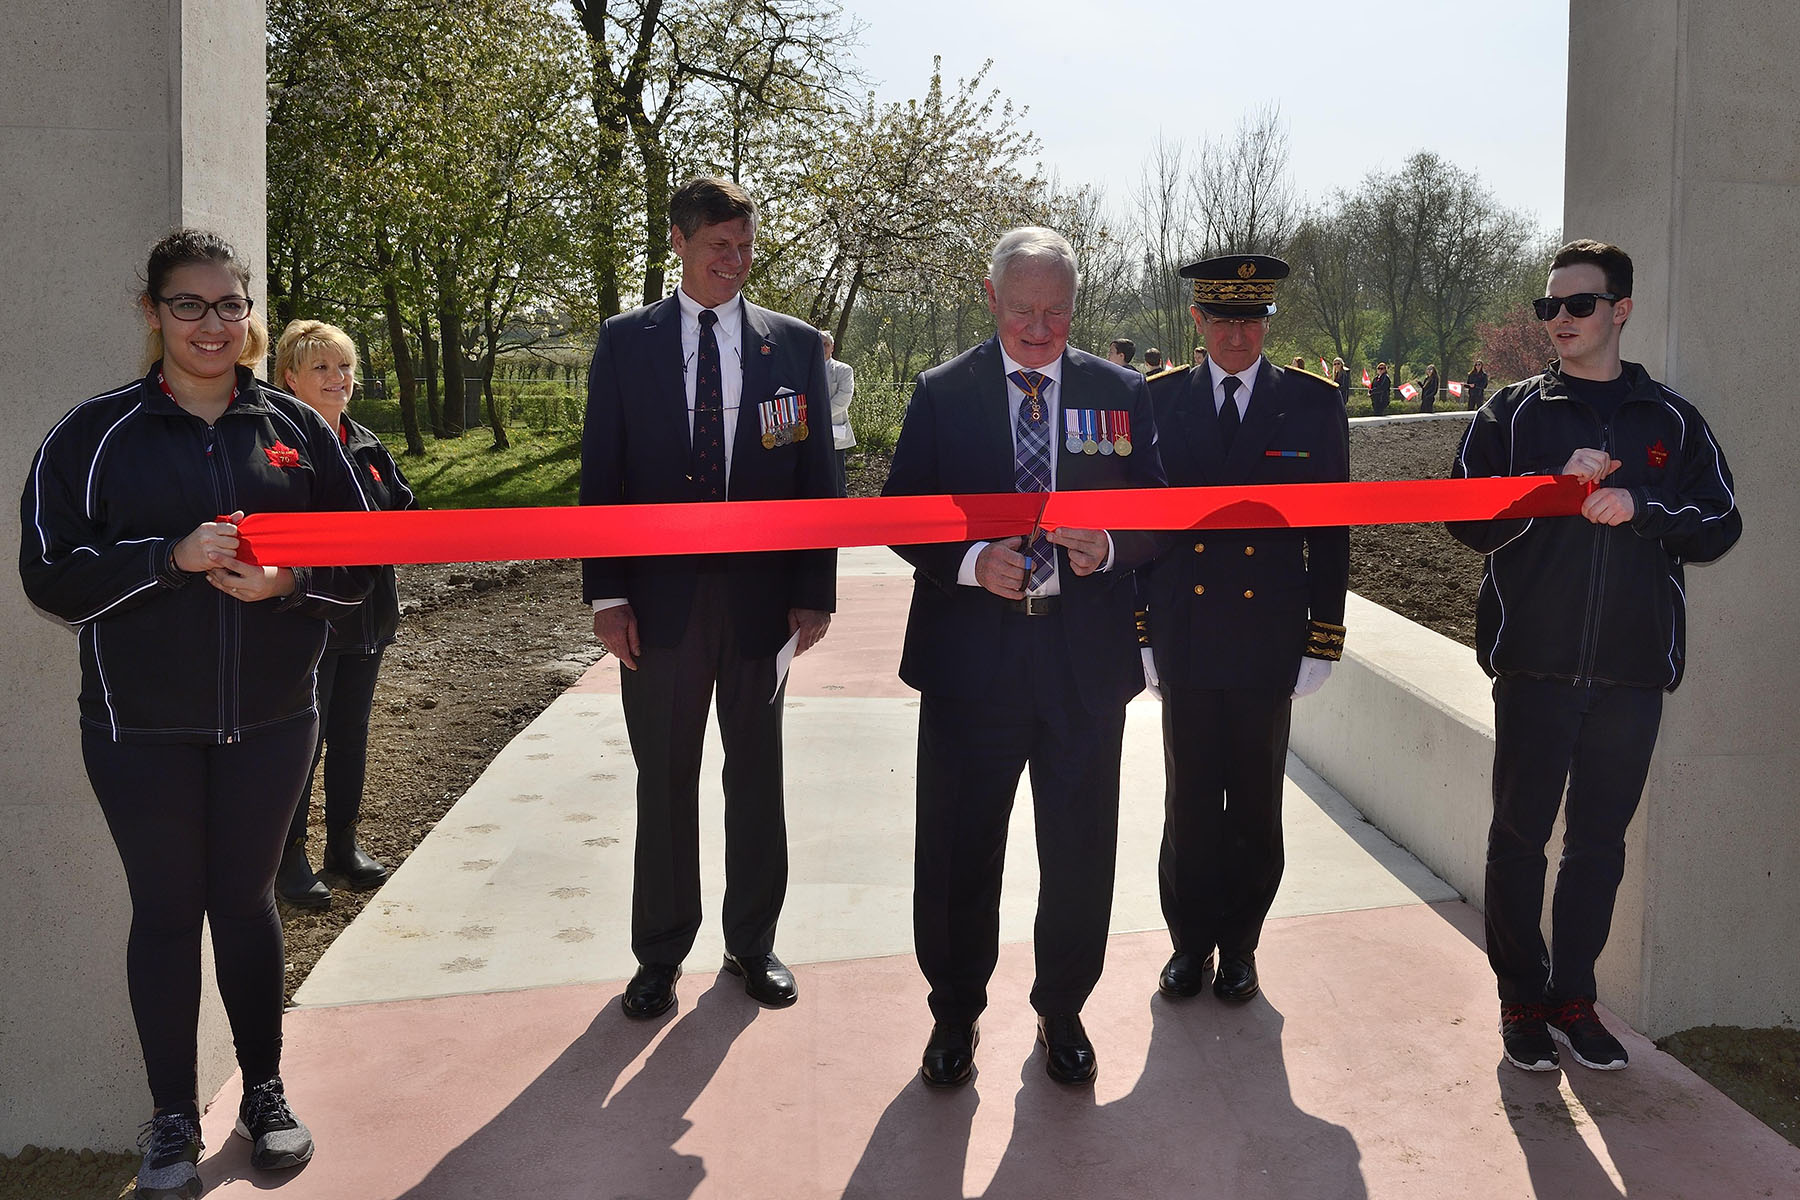 Later in the day, Their Excellencies participated in the Hill 70 Memorial Dedication Ceremony. His Excellency proceeded with the official ribbon-cutting to inaugurate this important monument.